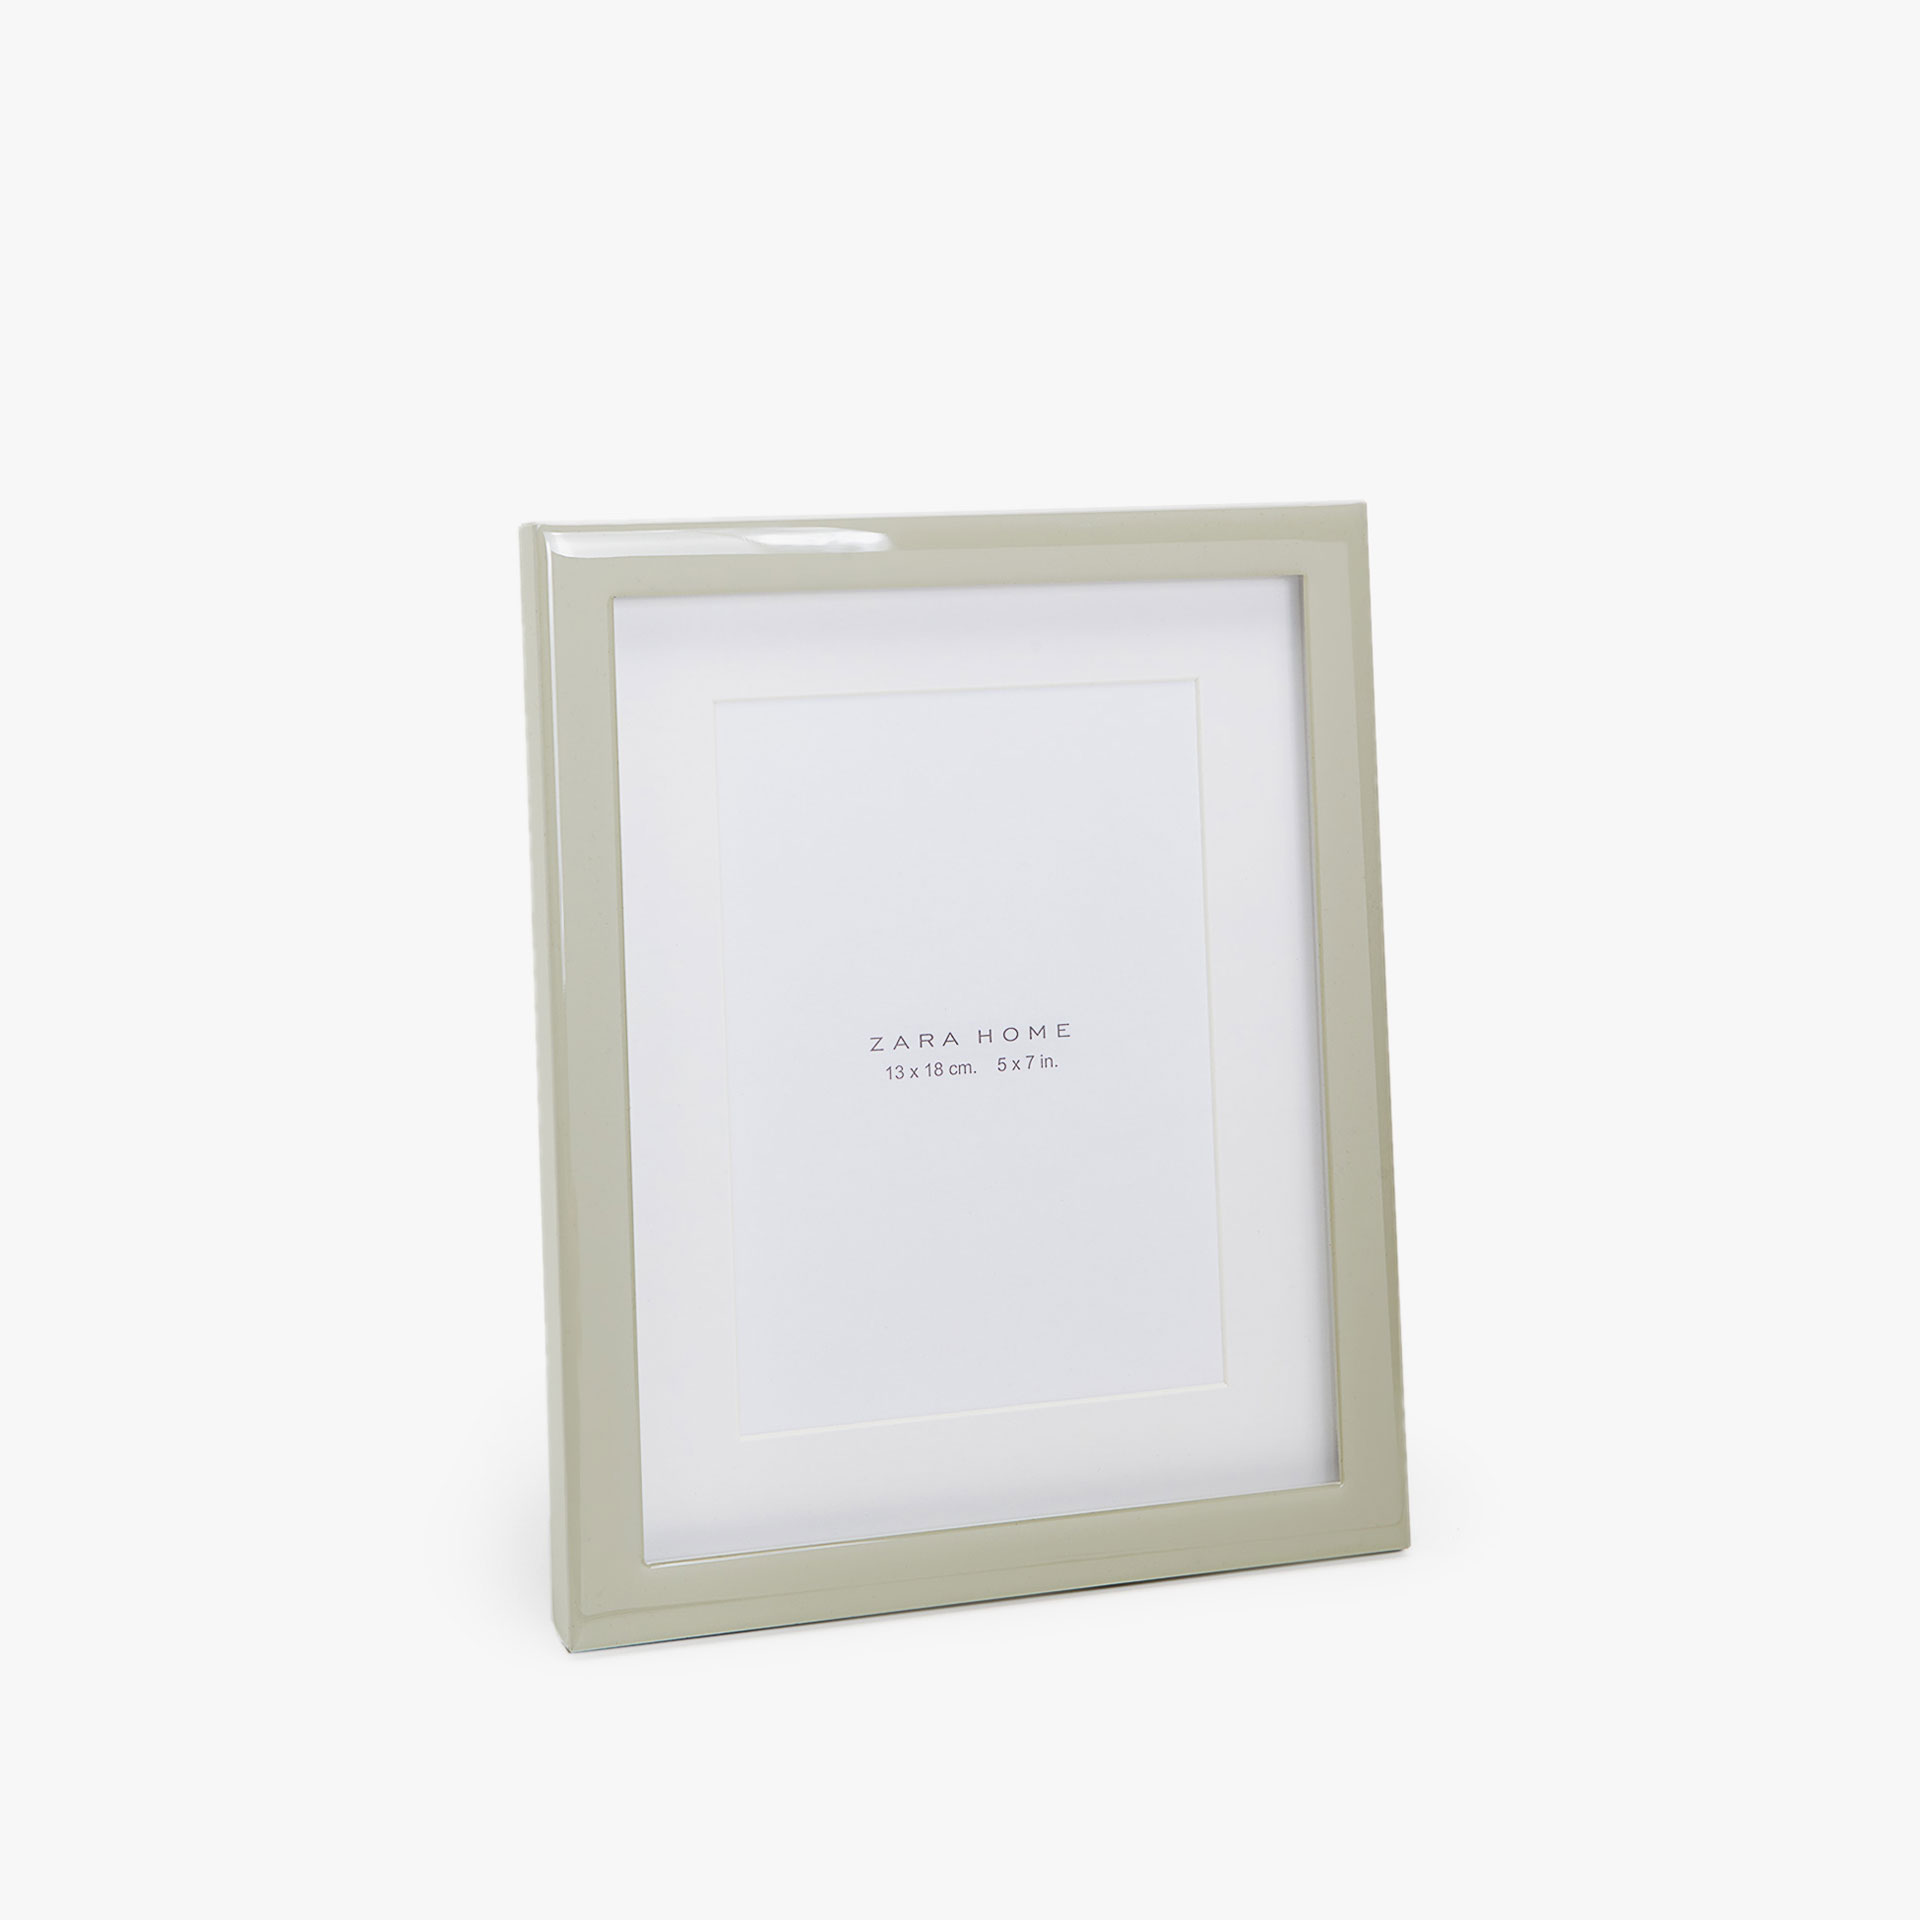 SHINY METAL FRAME WITH PASSE-PARTOUT